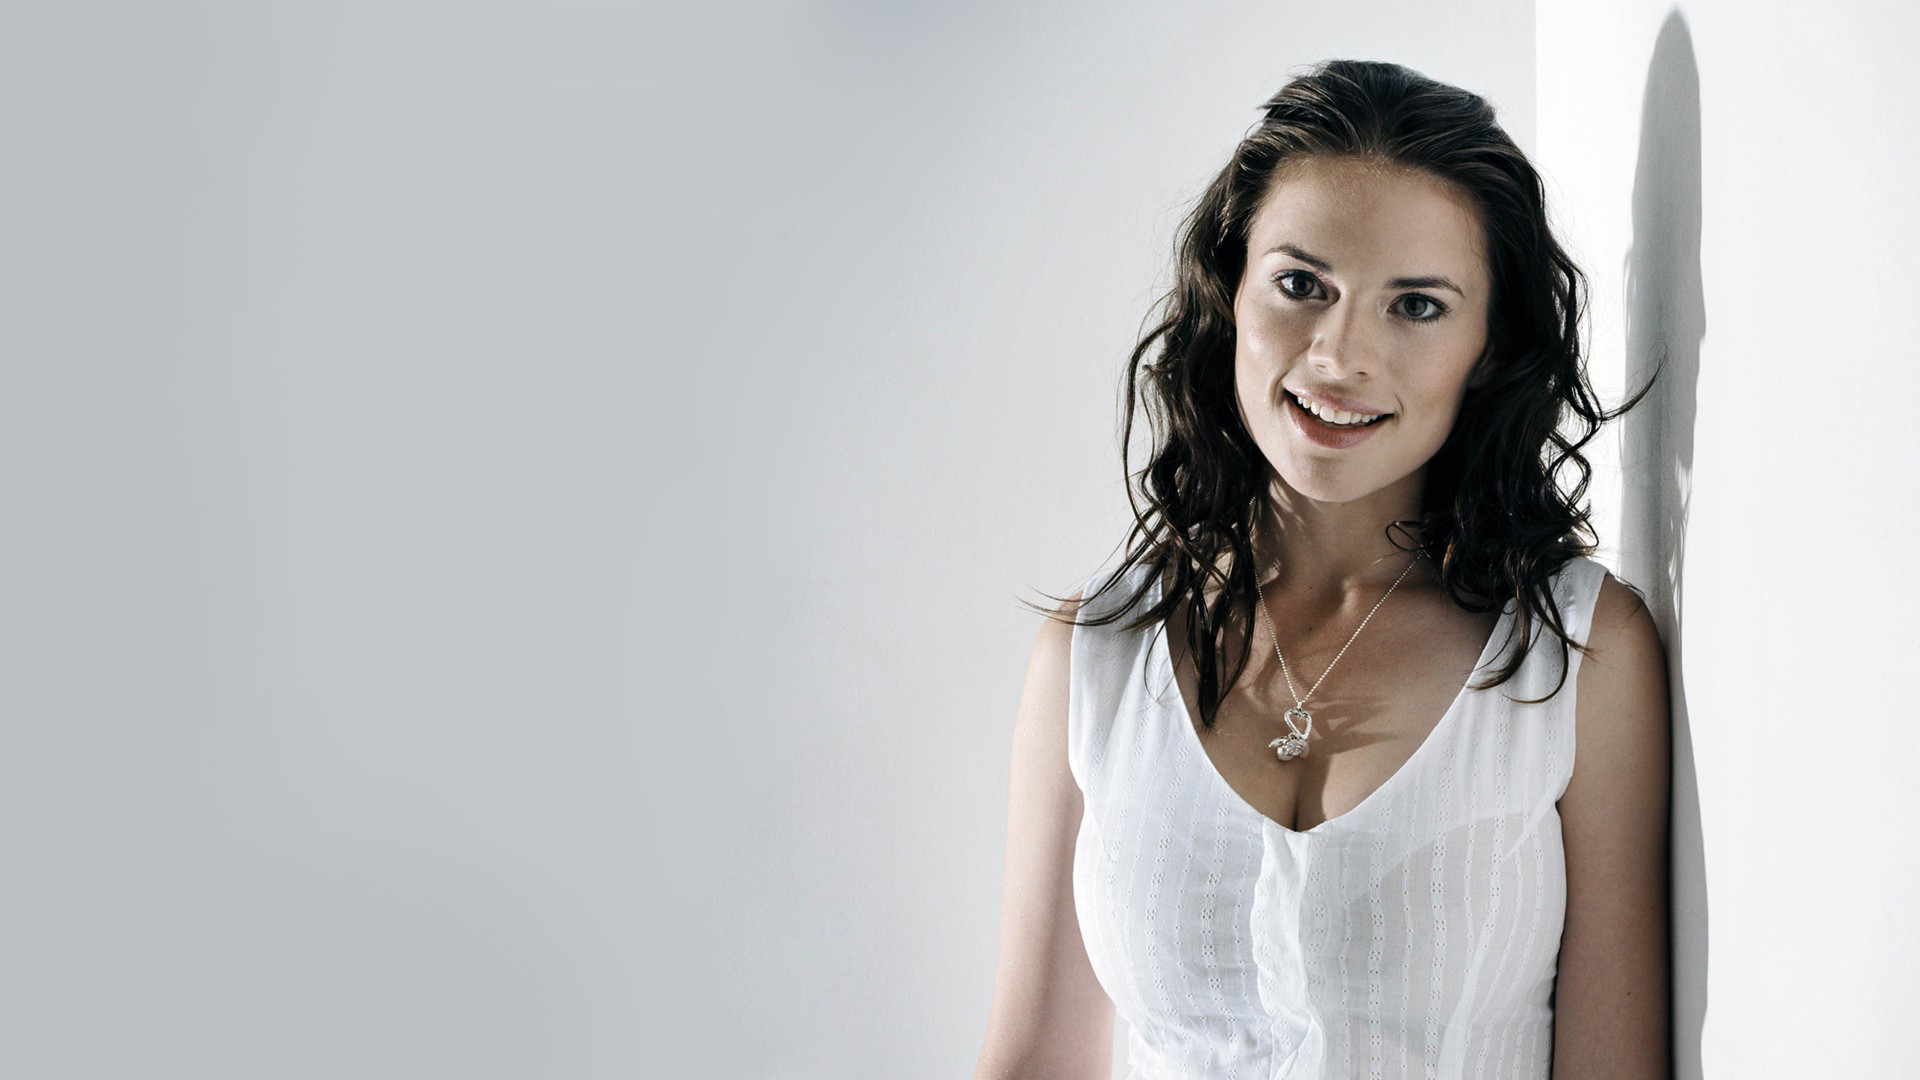 1920x1080 - Hayley Atwell Wallpapers 1